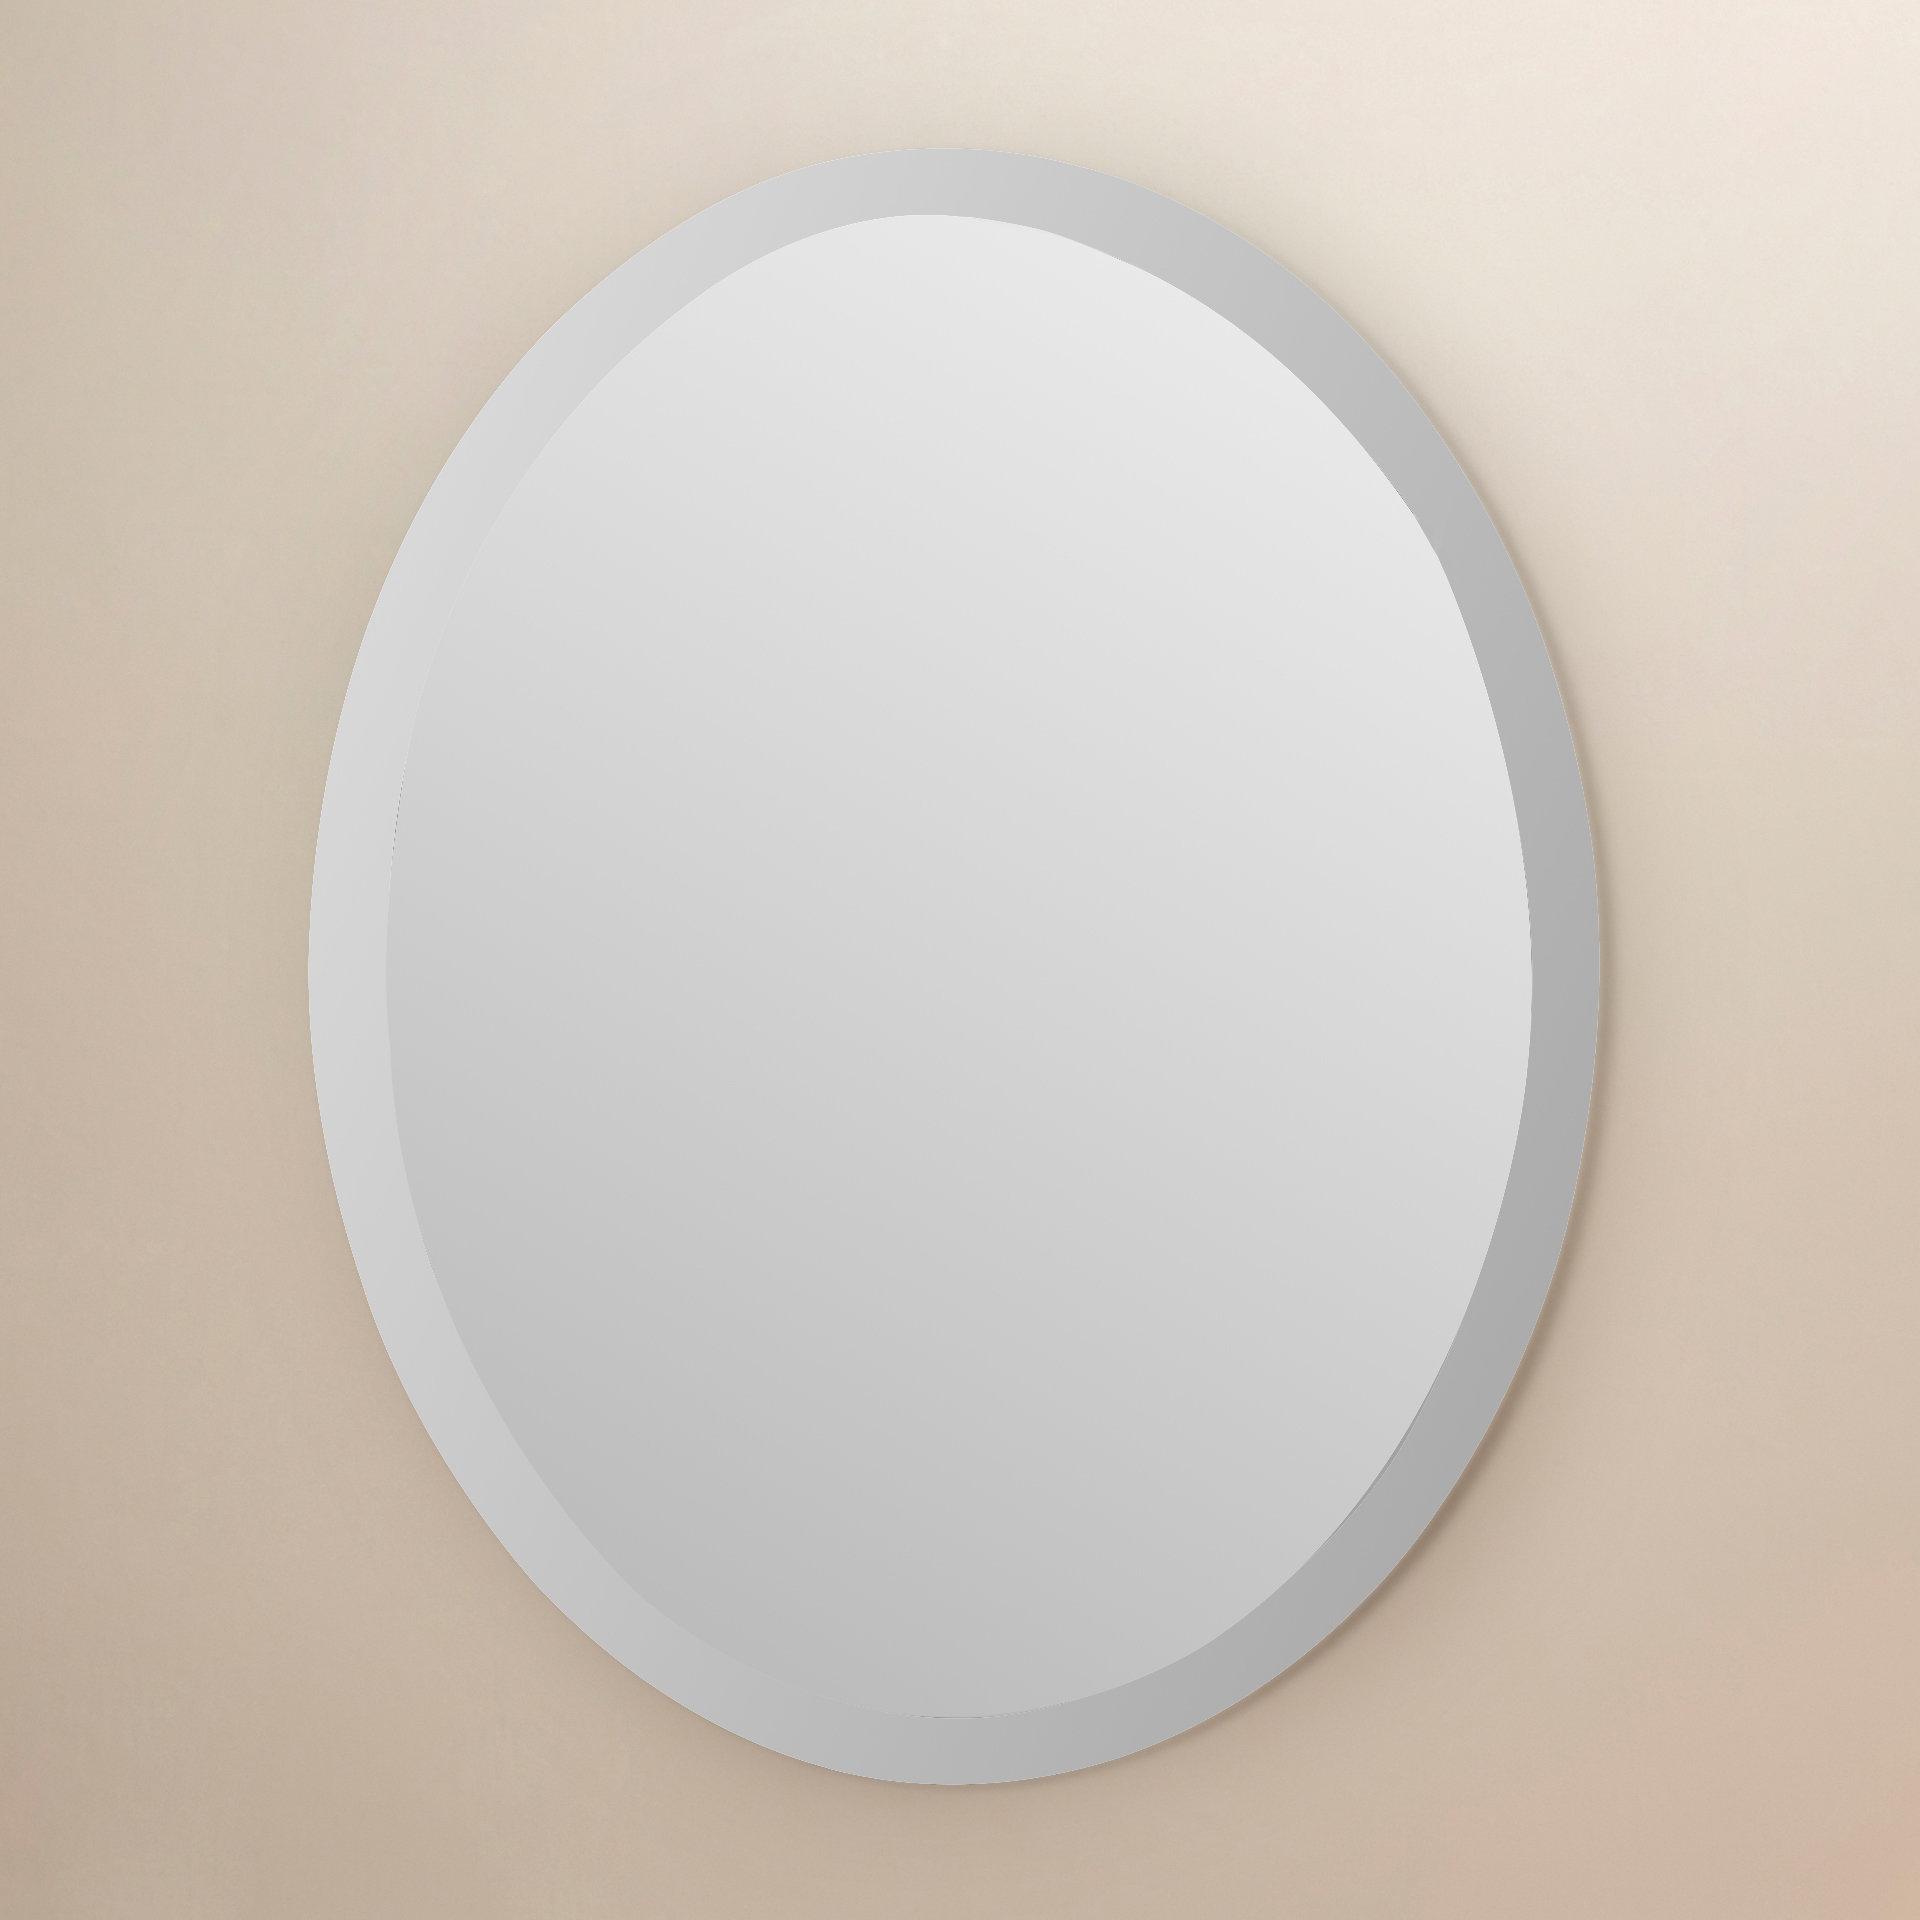 Gaunts Earthcott Modern & Contemporary Beveled Frameless Accent Mirror With Regard To Gaunts Earthcott Modern & Contemporary Beveled Accent Mirrors (Image 9 of 20)